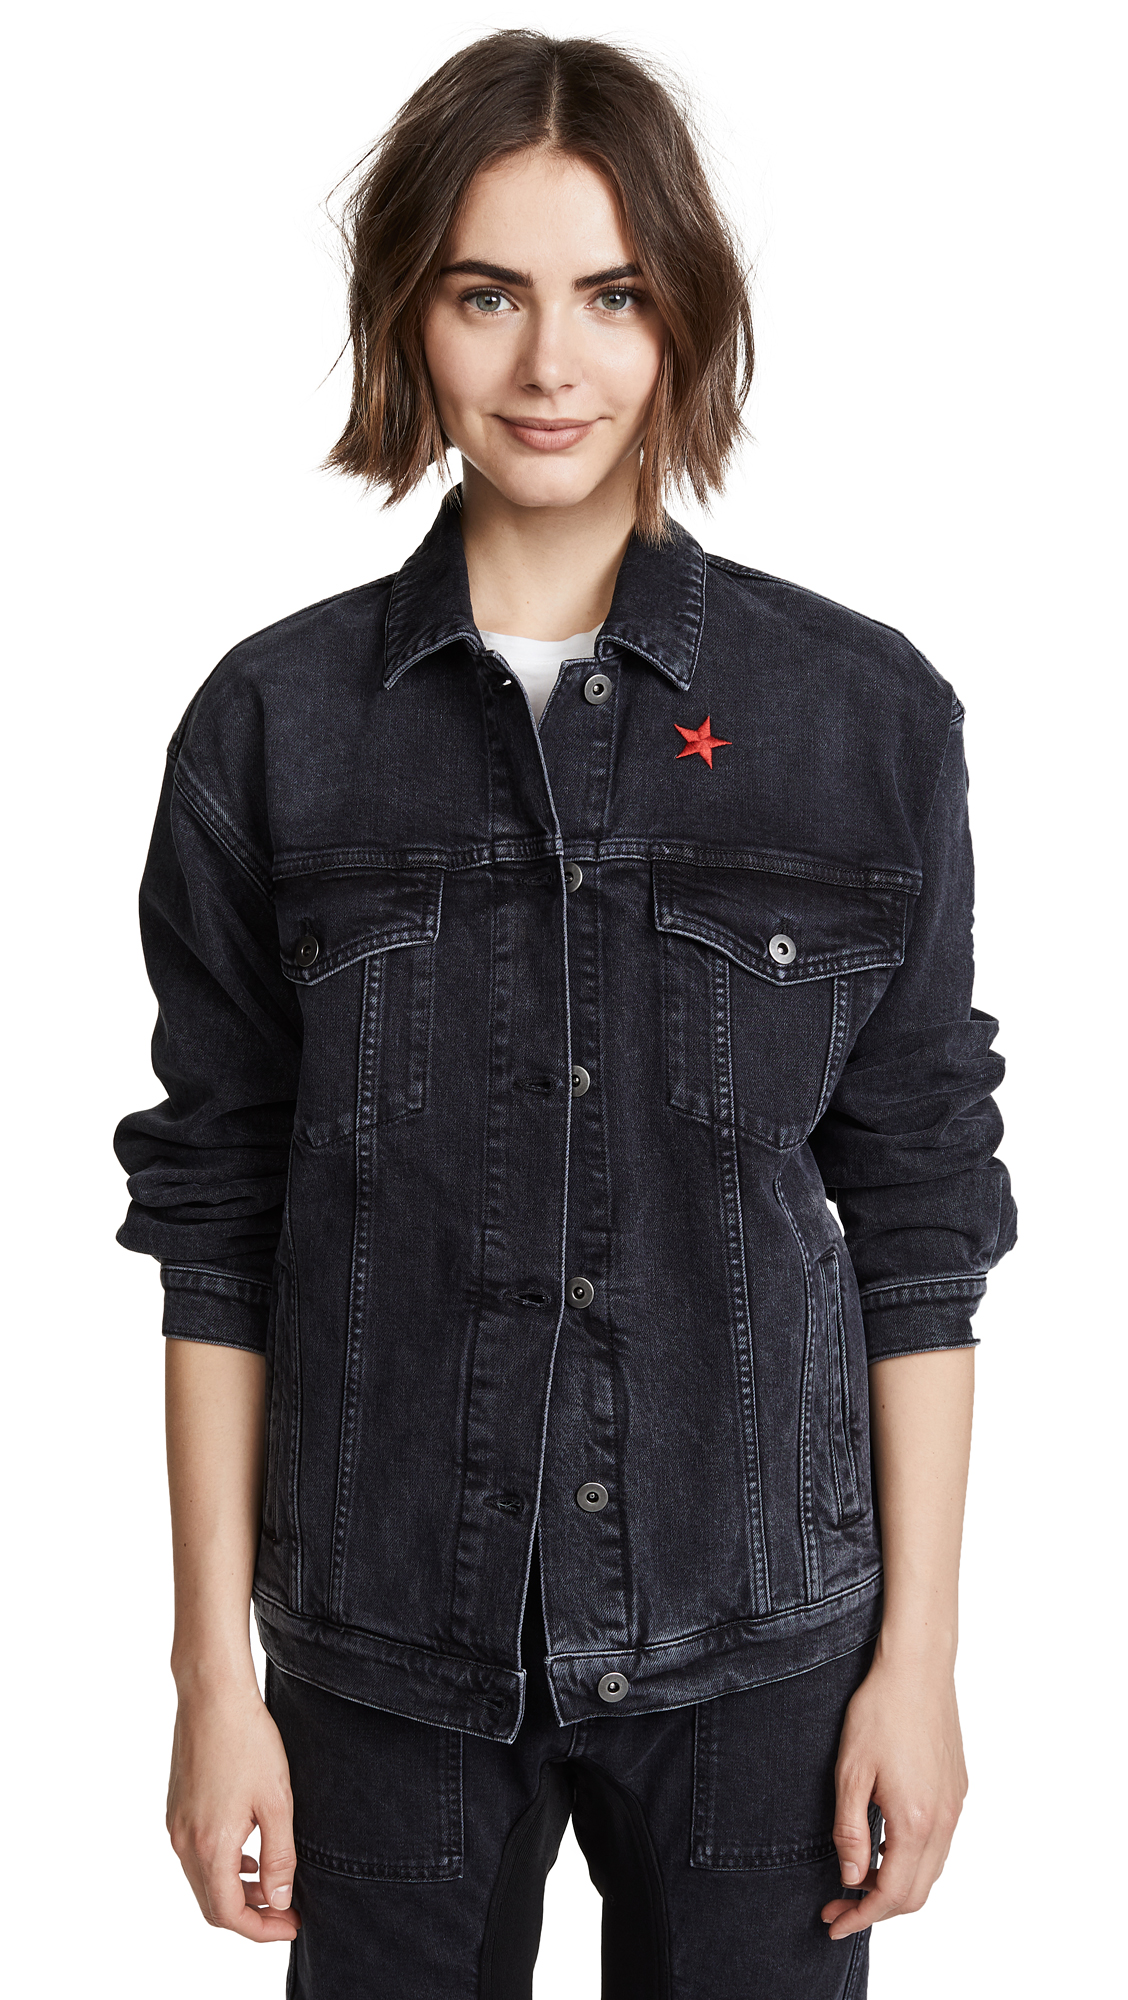 Stella McCartney Denim Jacket In Black